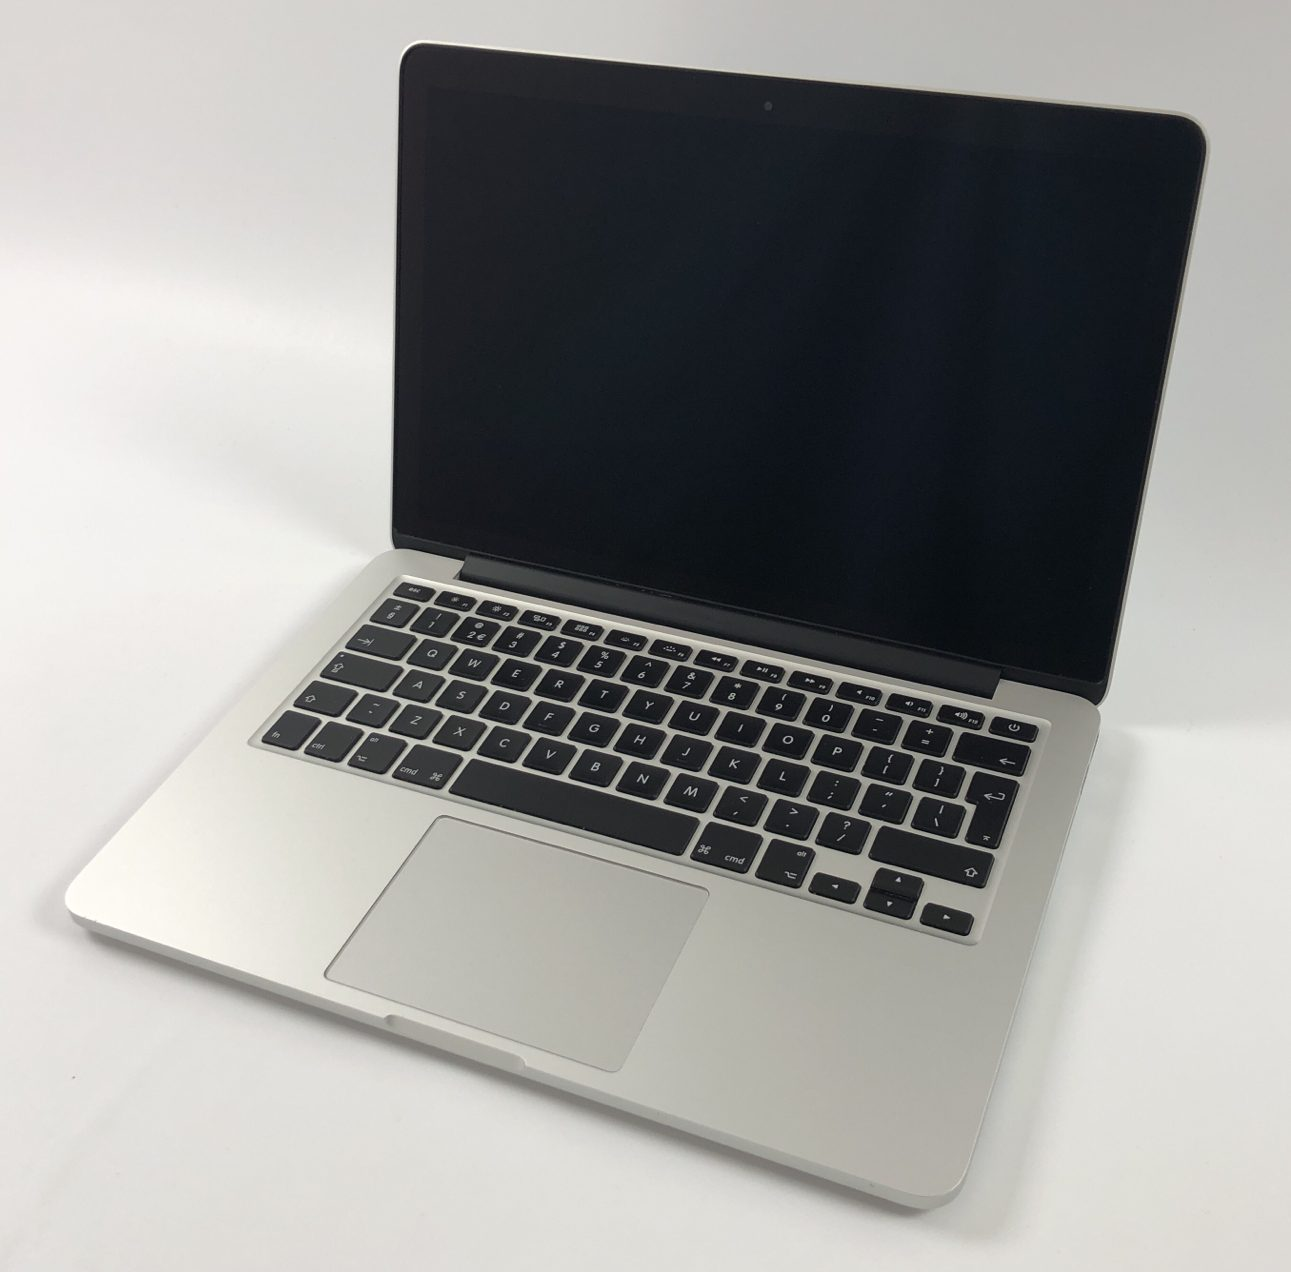 "MacBook Pro Retina 13"" Early 2015 (Intel Core i5 2.7 GHz 8 GB RAM 256 GB SSD), Intel Core i5 2.7 GHz, 8 GB RAM, 256 GB SSD, Afbeelding 1"